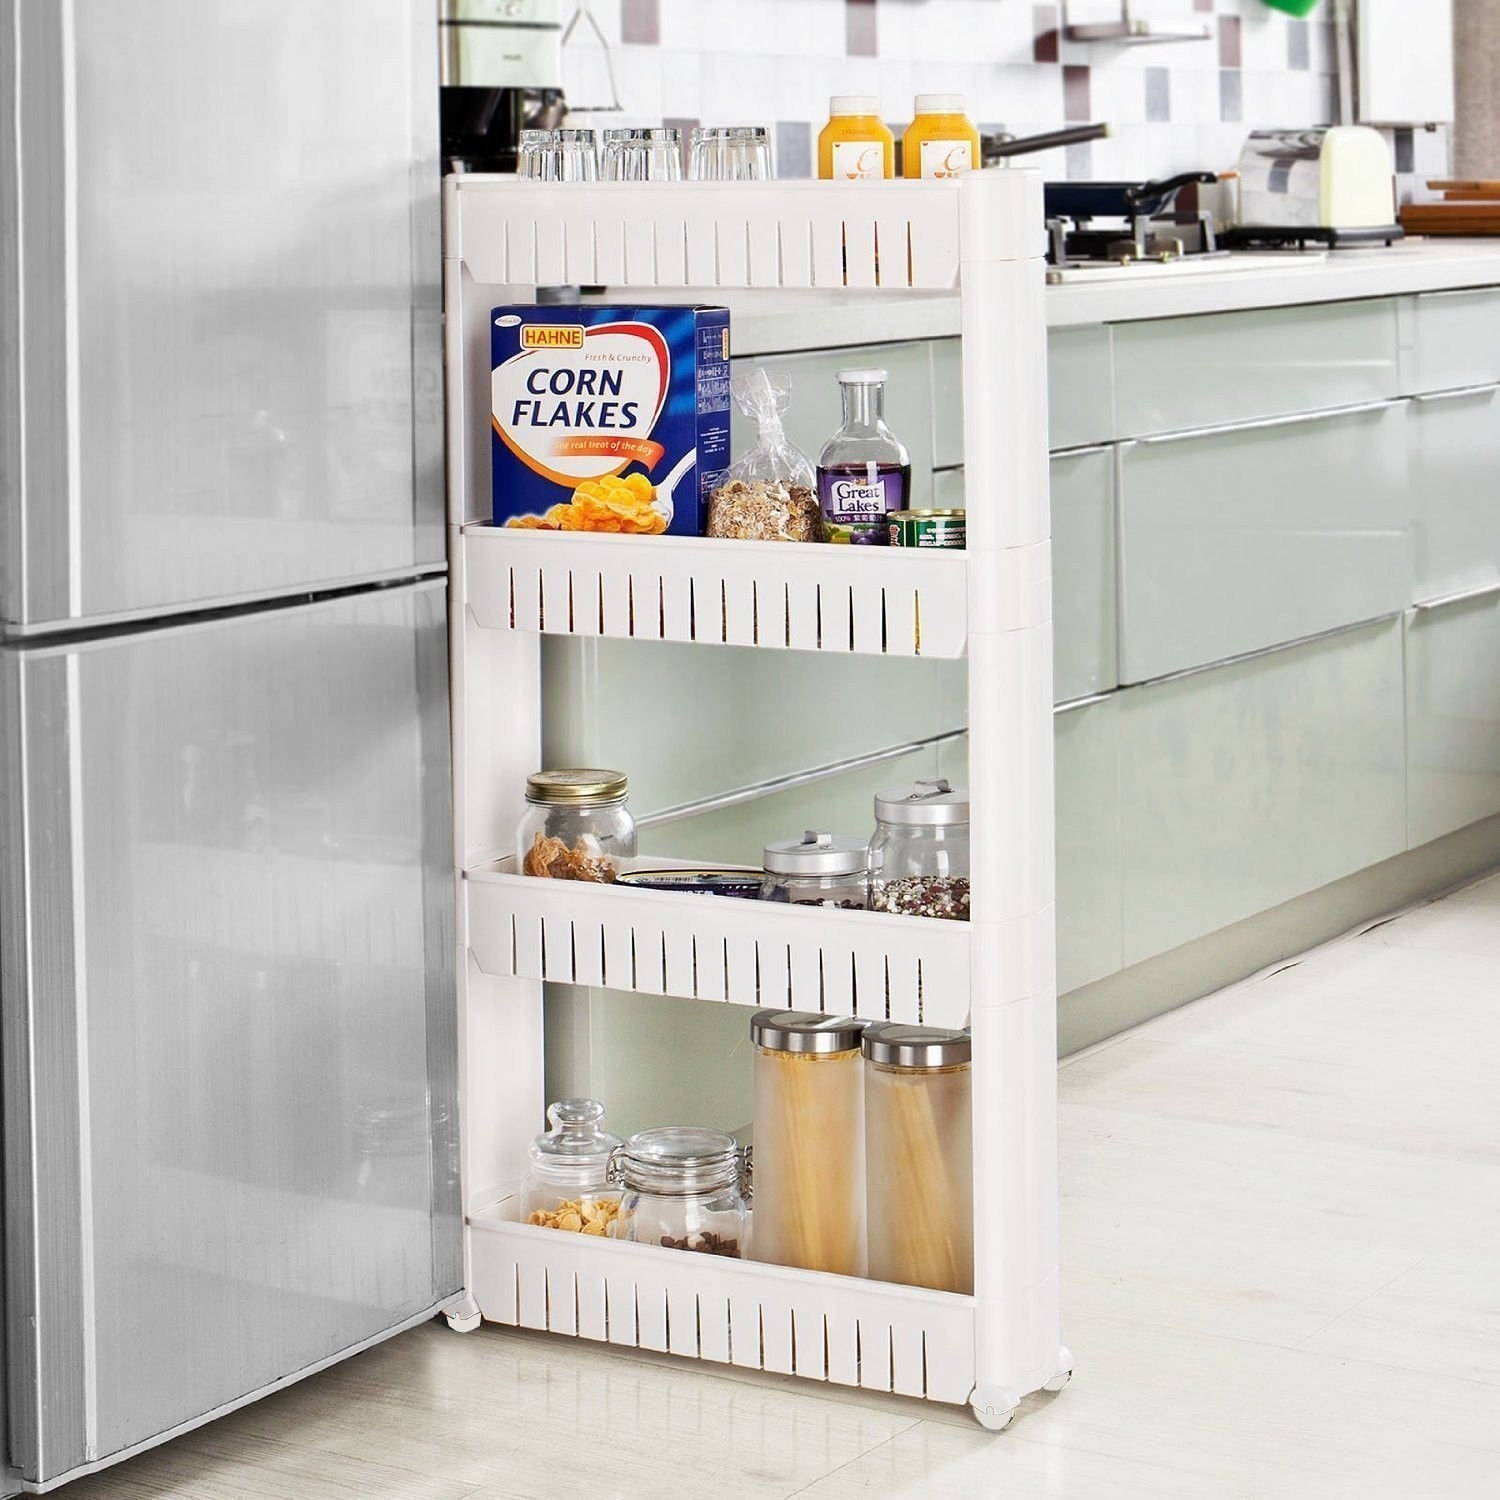 A slim white kitchen rack being wheeled into a space